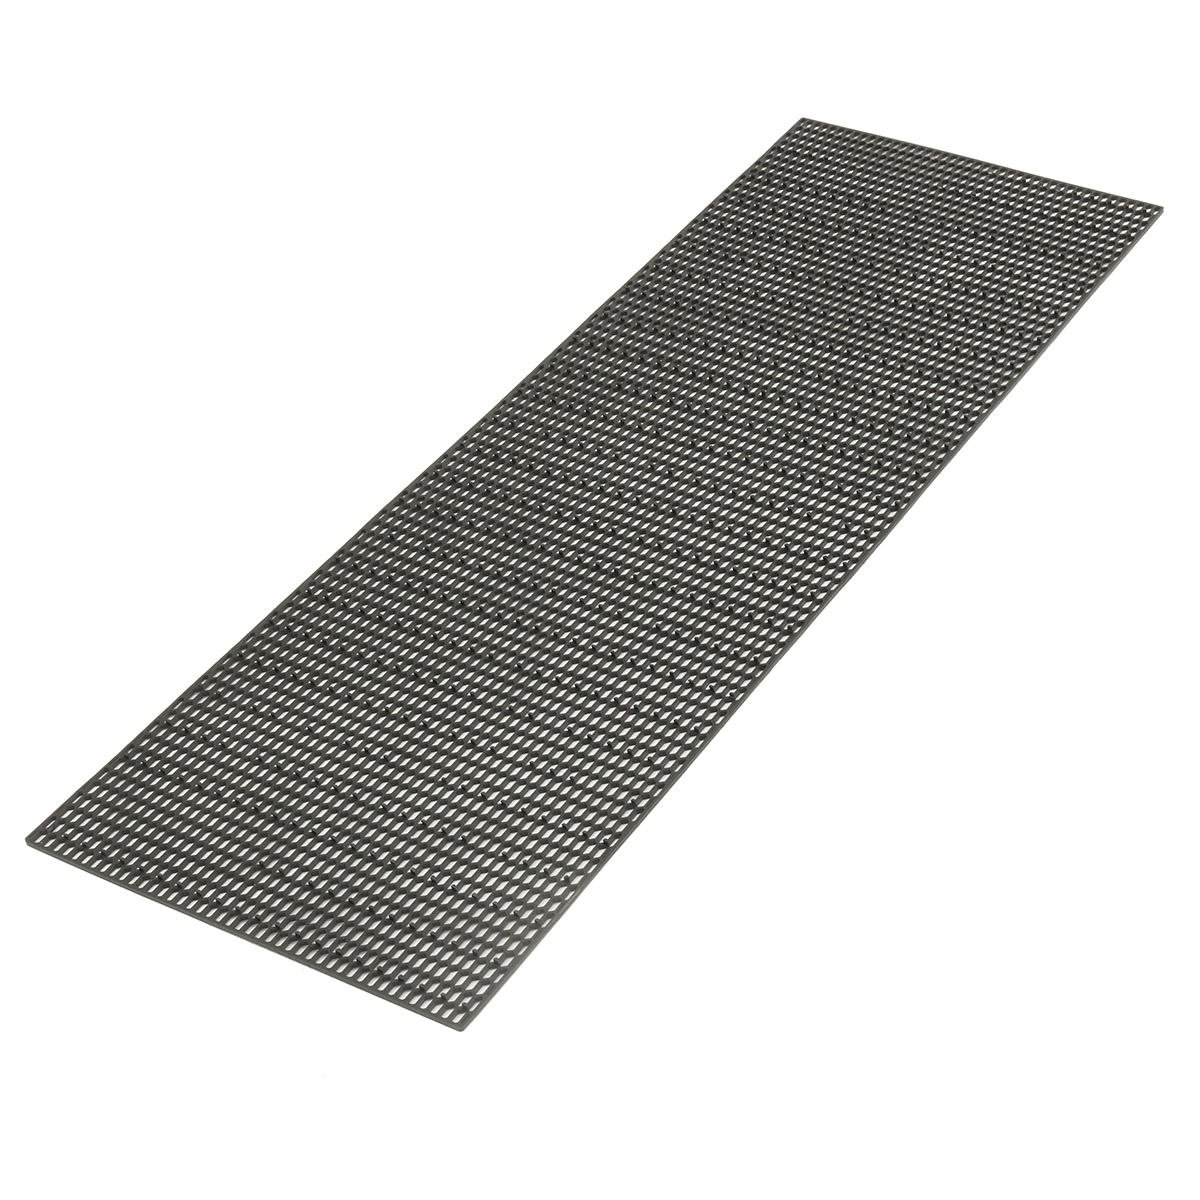 120X40cm ABS Plastic Car Styling Air Intake Racing Honeycomb Meshed Grille Spoiler Bumper Hood Vent Universal